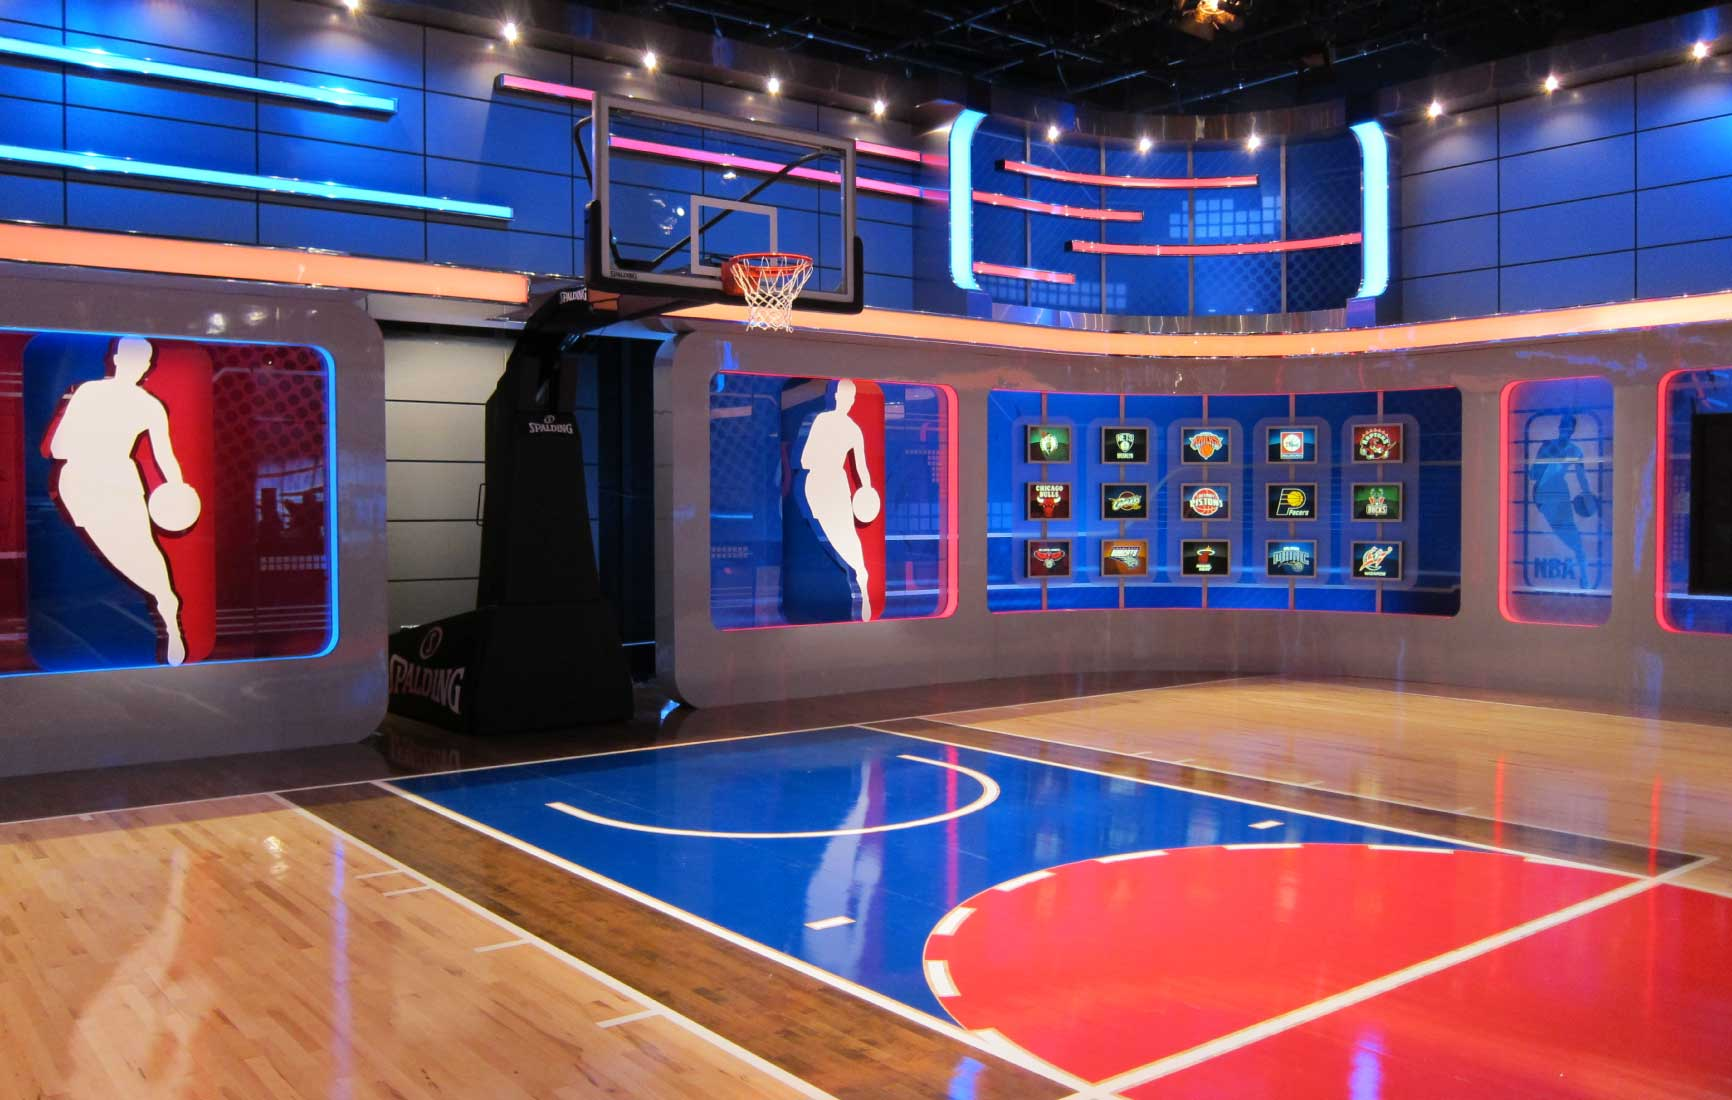 NBA TV Studio | Courtesy of Innovative Show Design